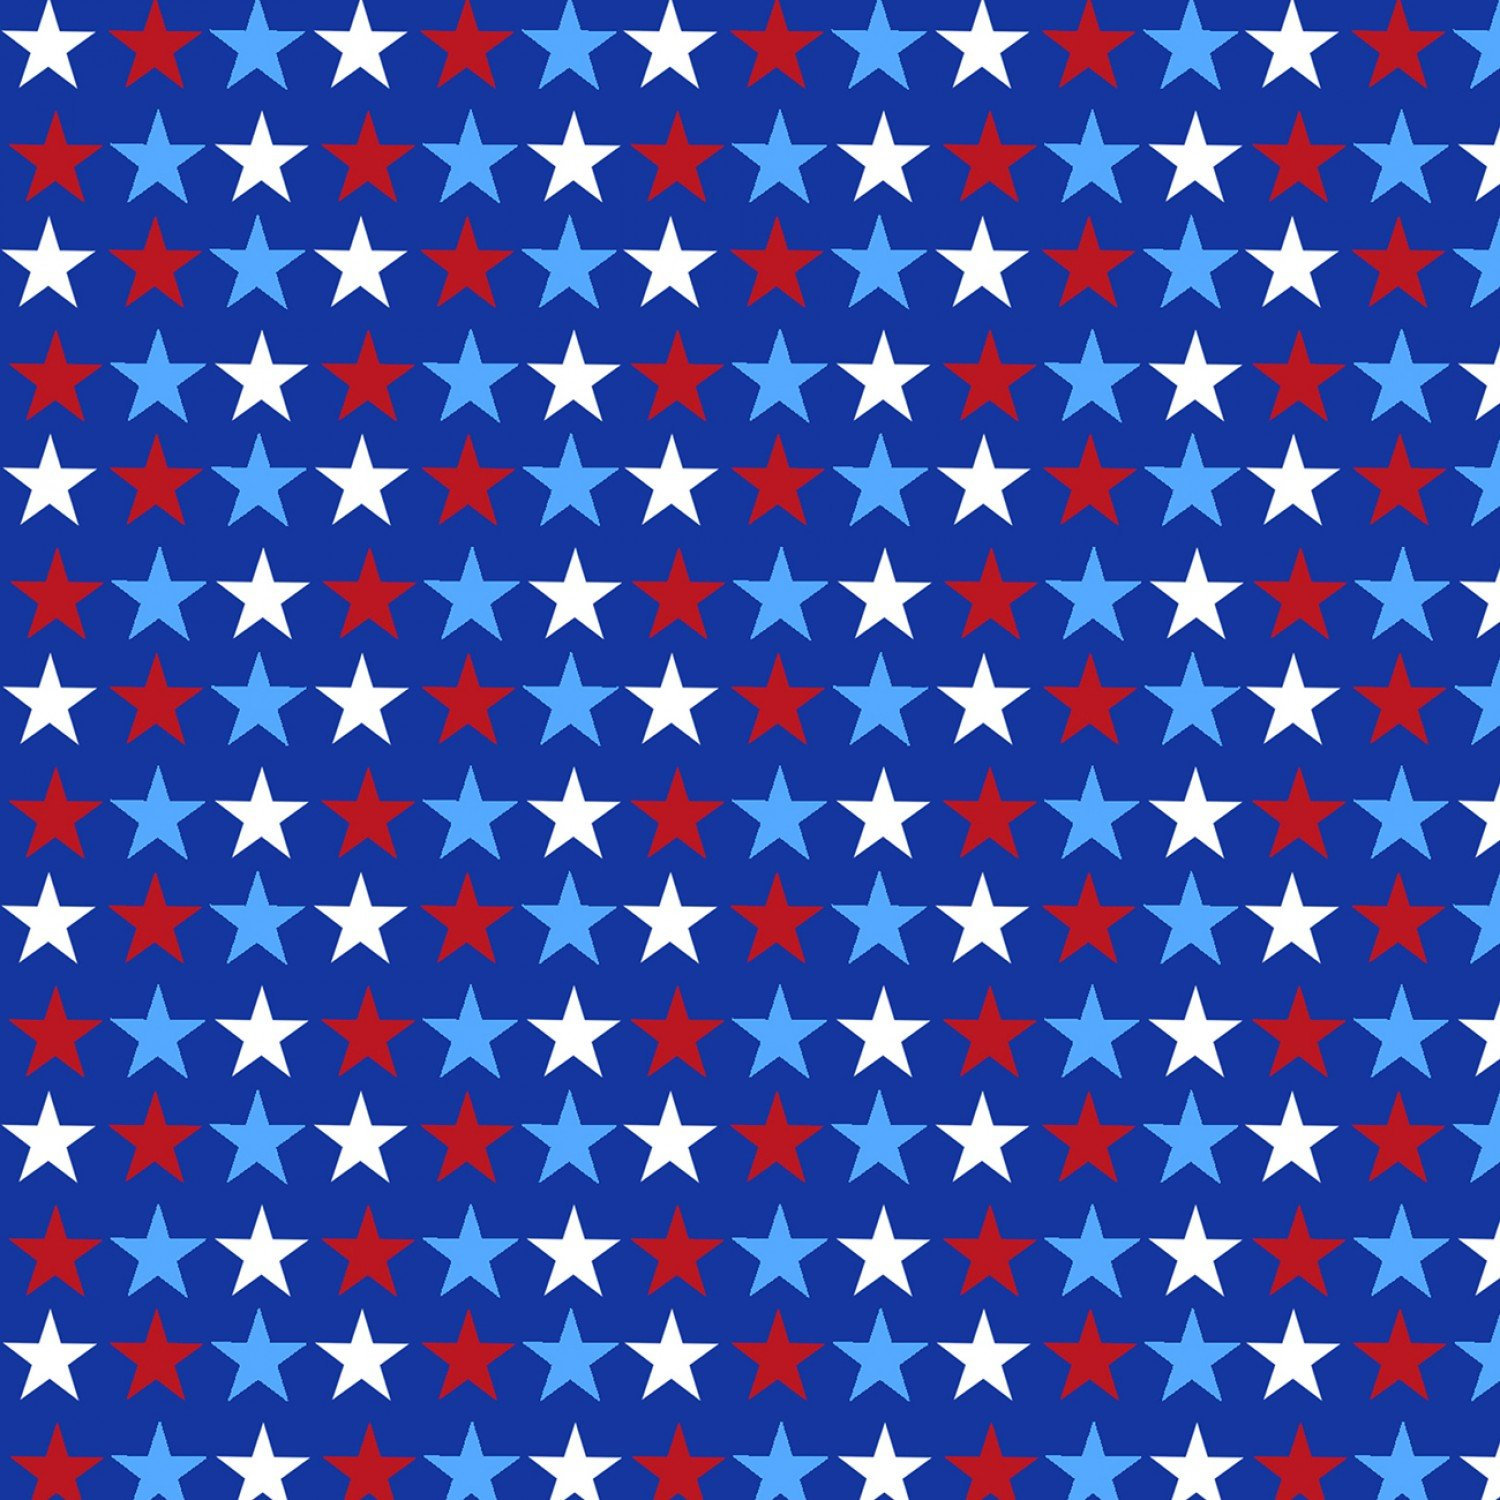 America Home of the Brave 4630-78 Royal Small Stars